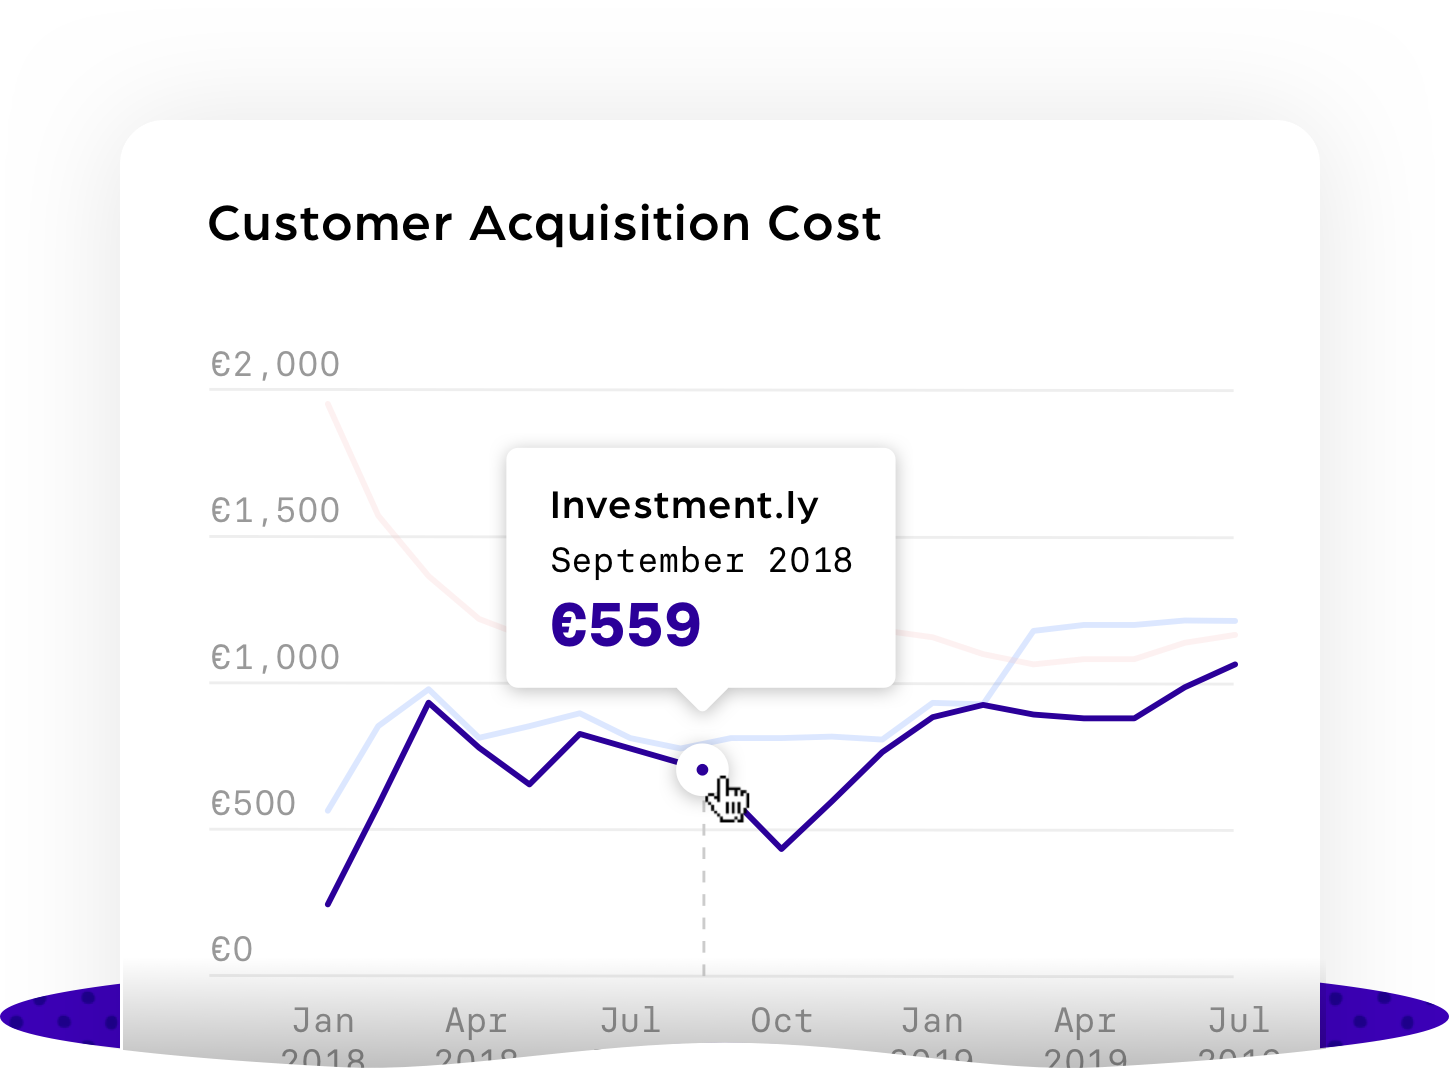 Customer Acquisition Cost@3x